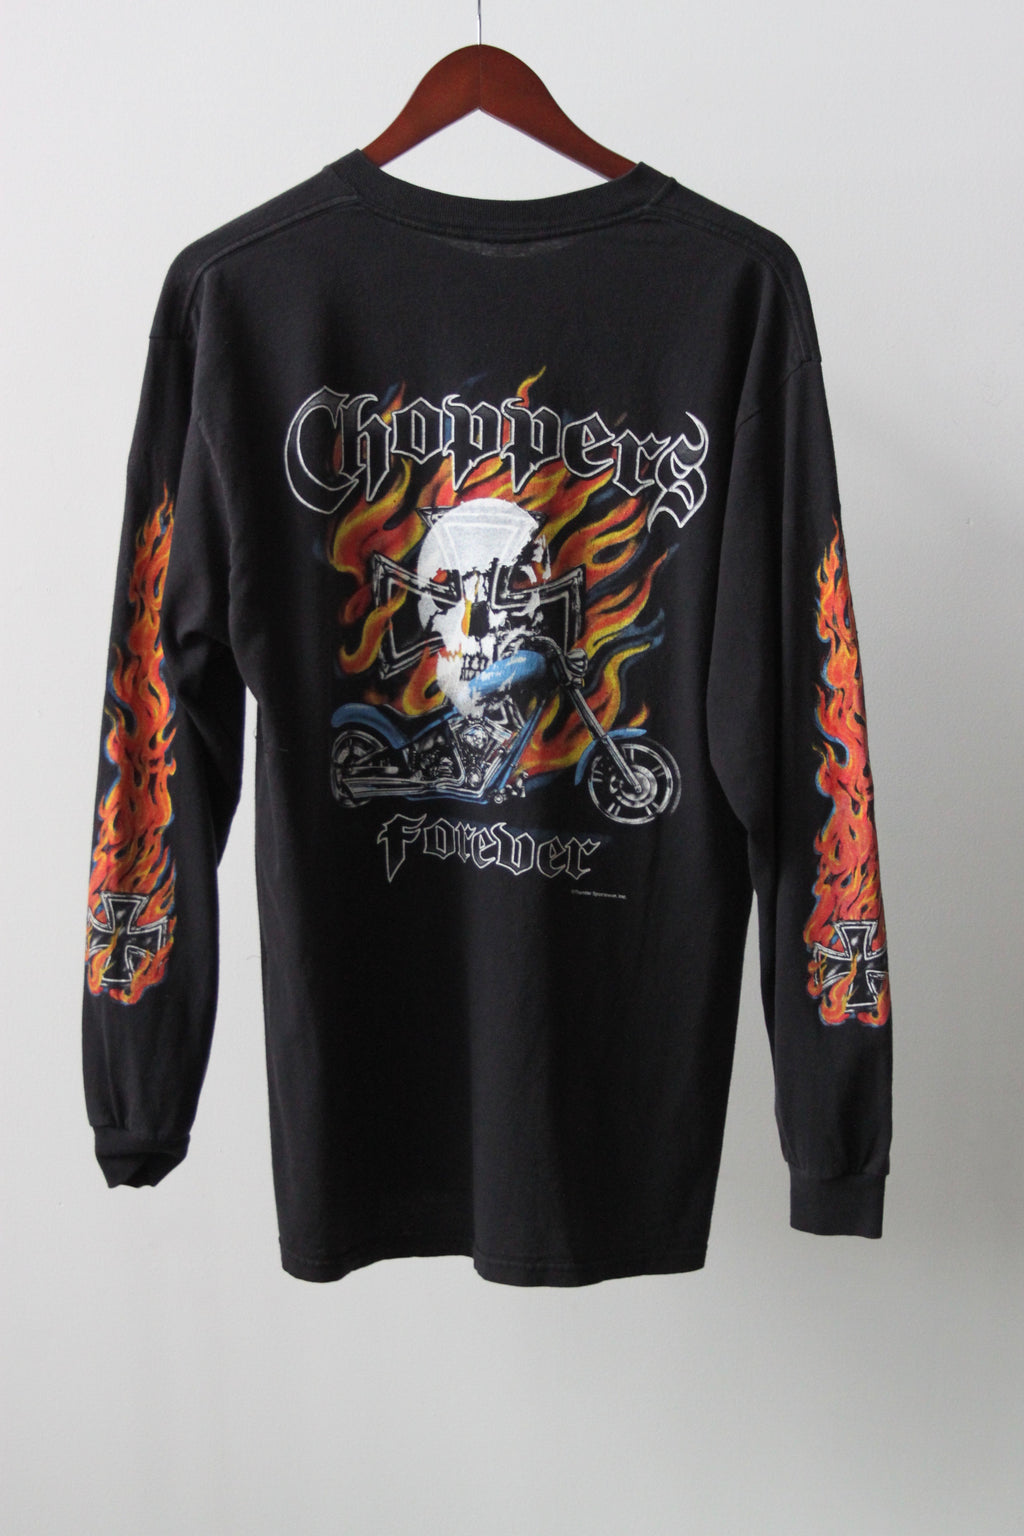 WSL Customized Vintage Reversible L/S Choppers Forever T-Shirt